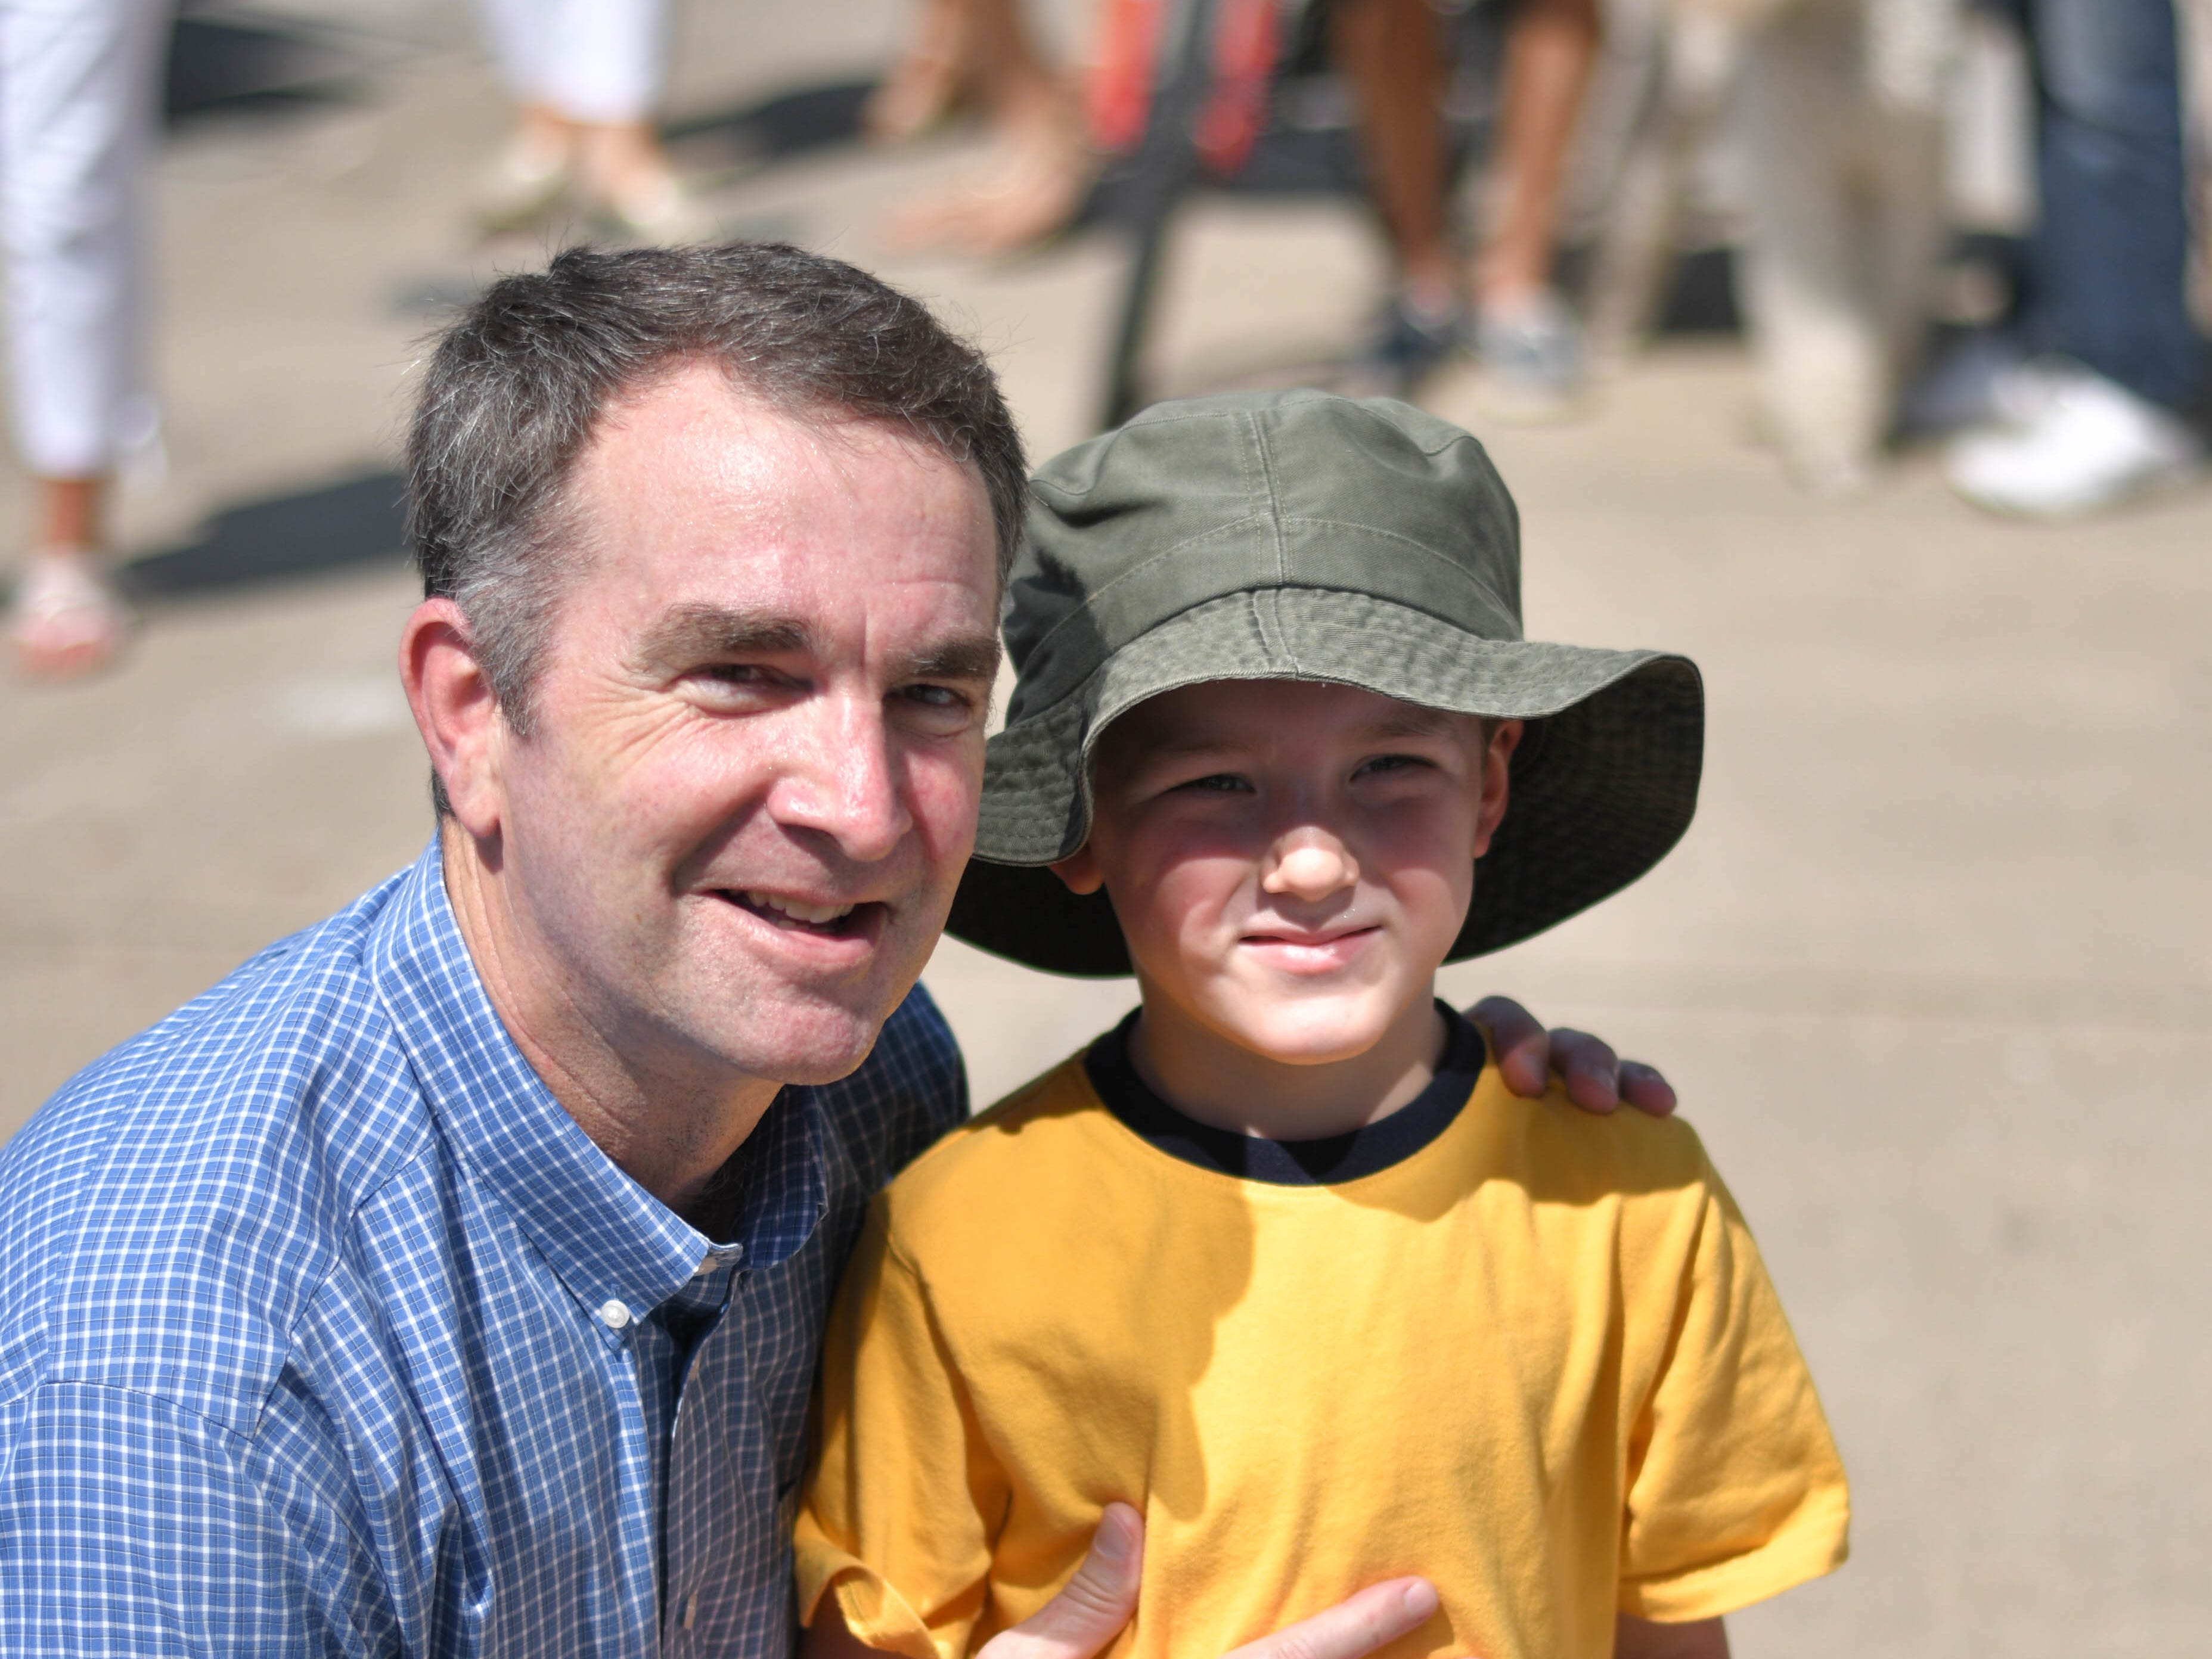 Governor Ralph Northam poses with a young bystander on Friday, July 27, 2018.